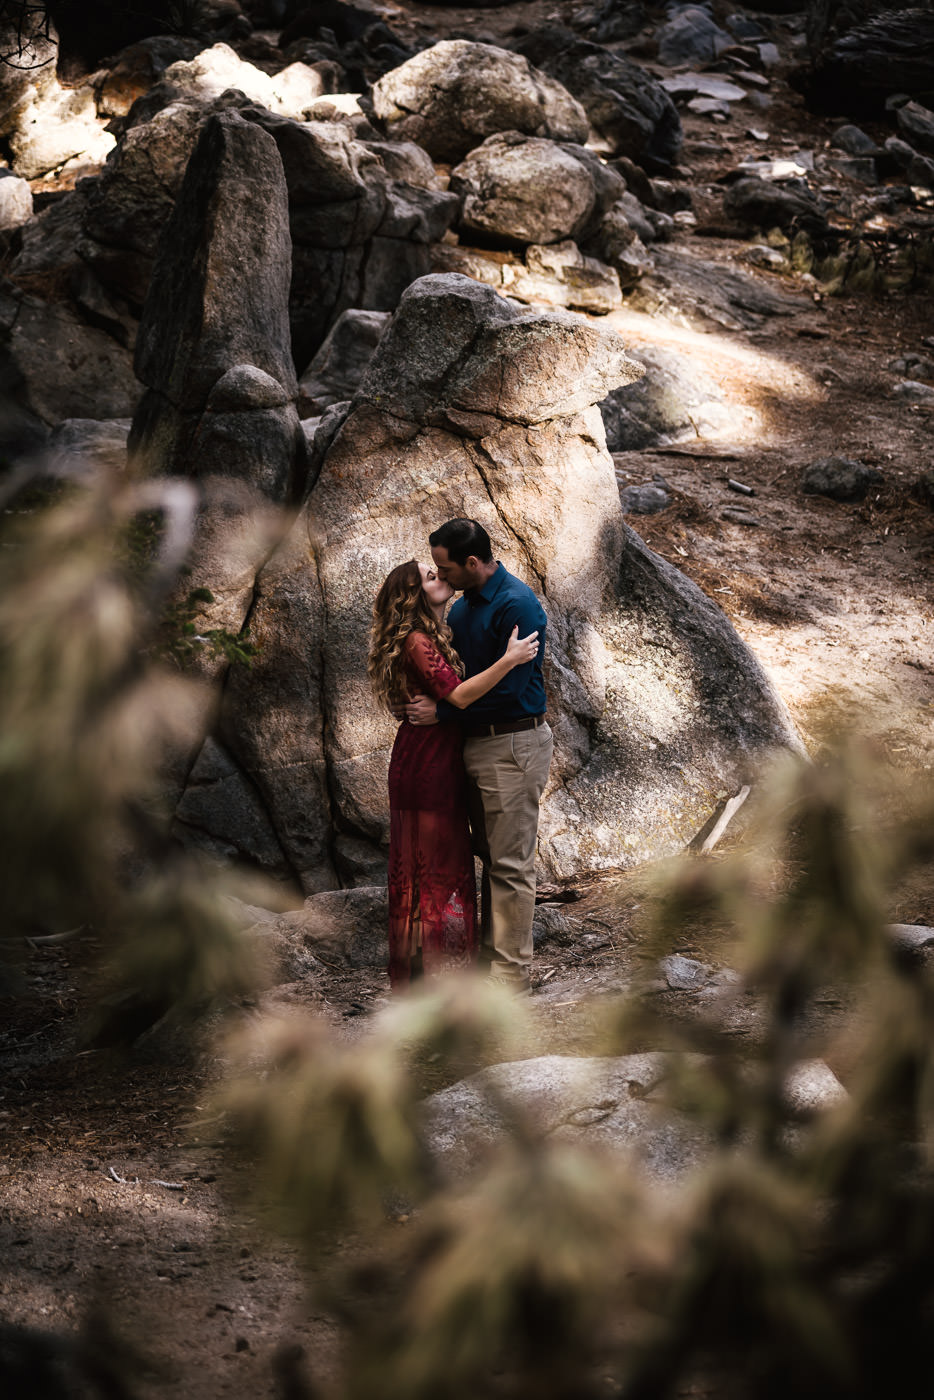 Weddings and engagements photography for adventurous spirits.